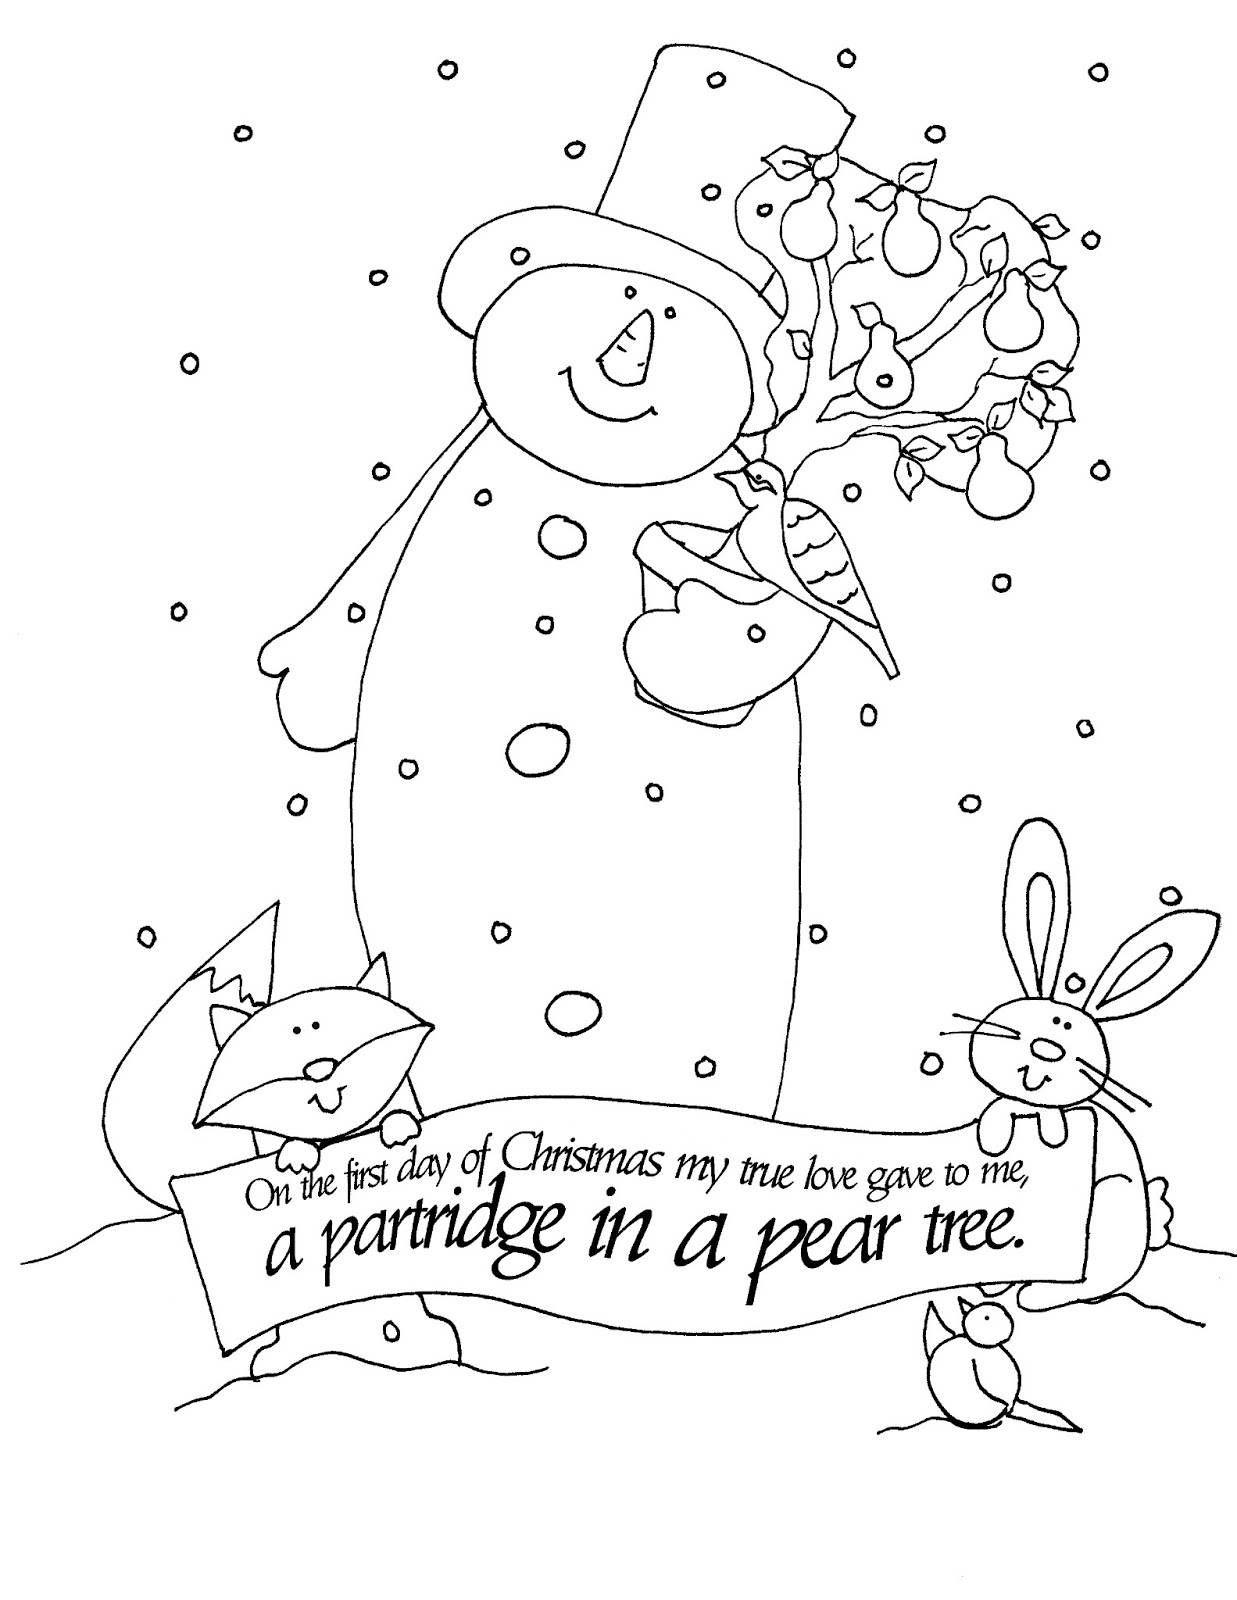 Free Dearie Dolls Digi Stamps On The First Day Of